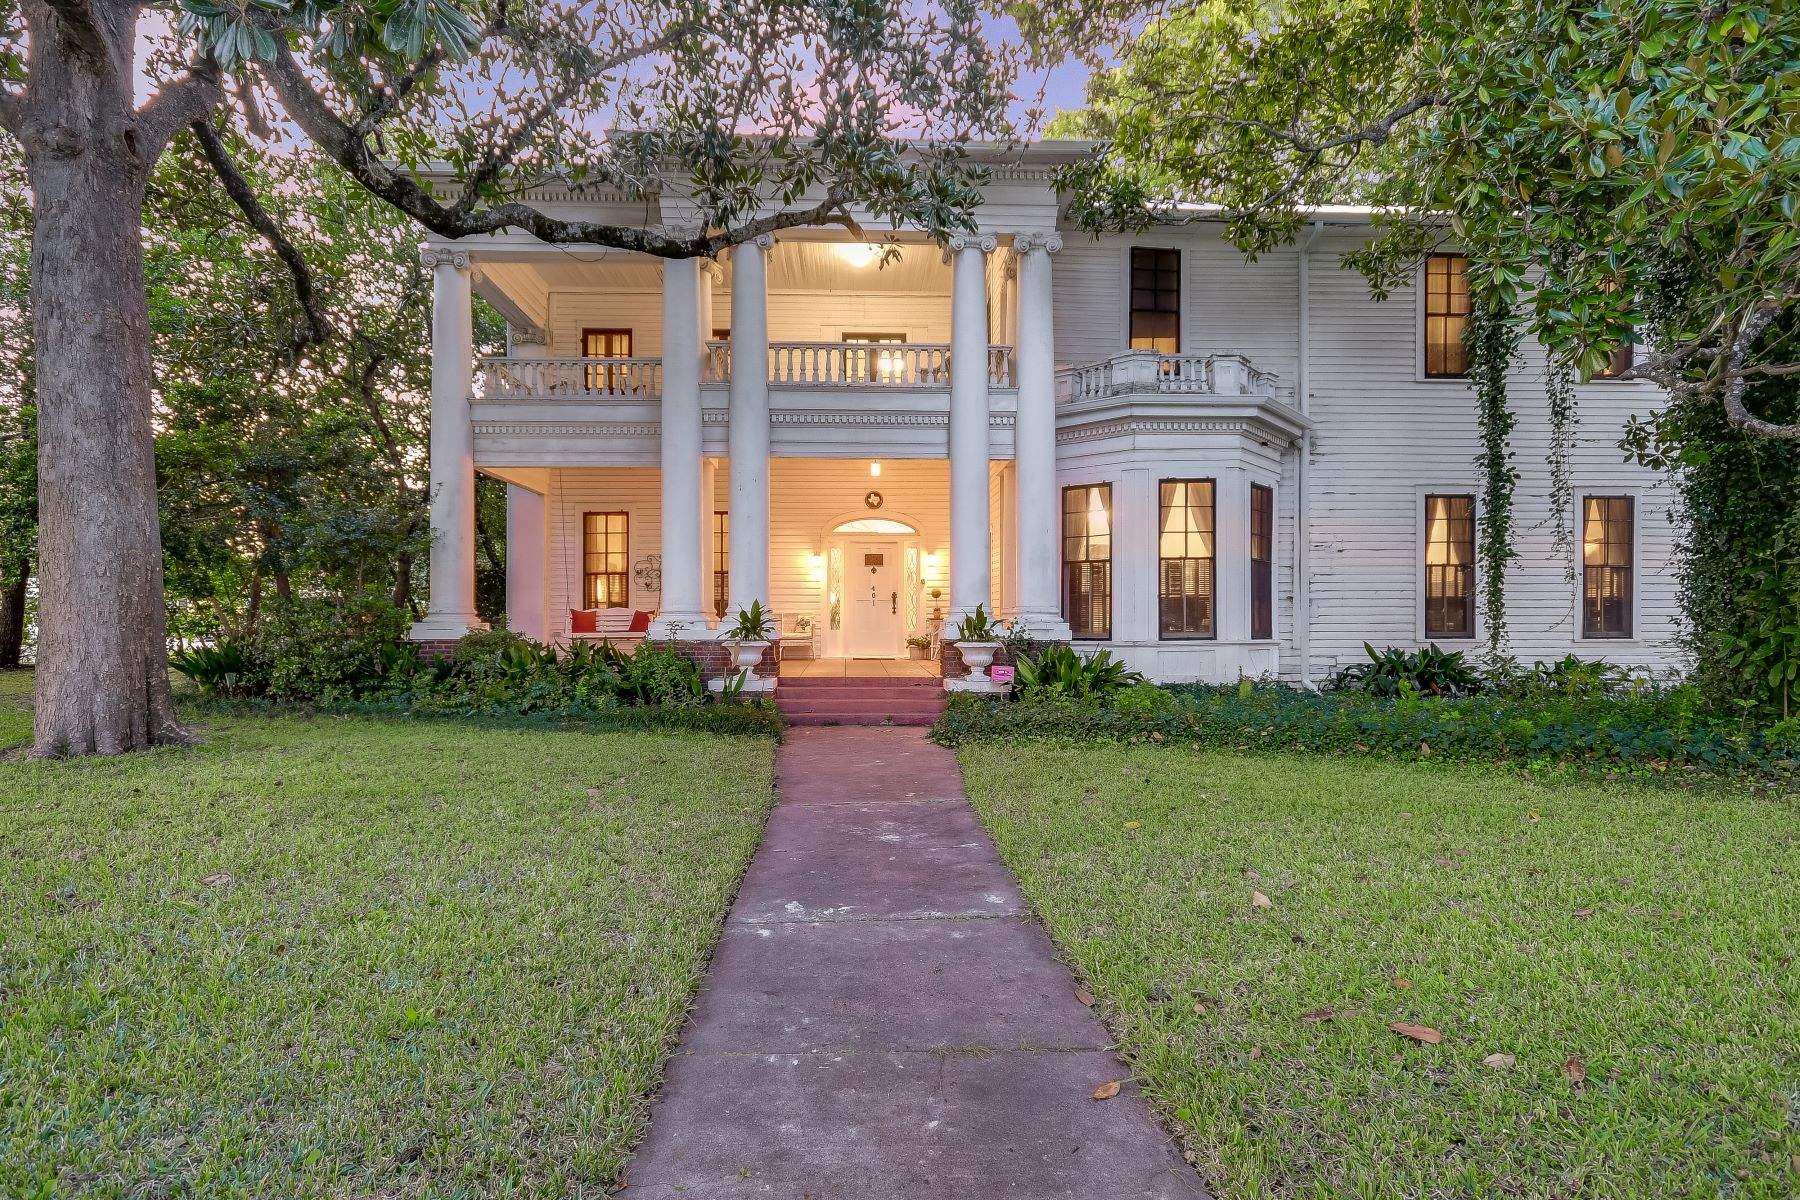 Single Family Homes for Active at 401 Main Street, Smithville, TX 78957 401 Main Street Lots 5-8 Smithville, Texas 78957 United States